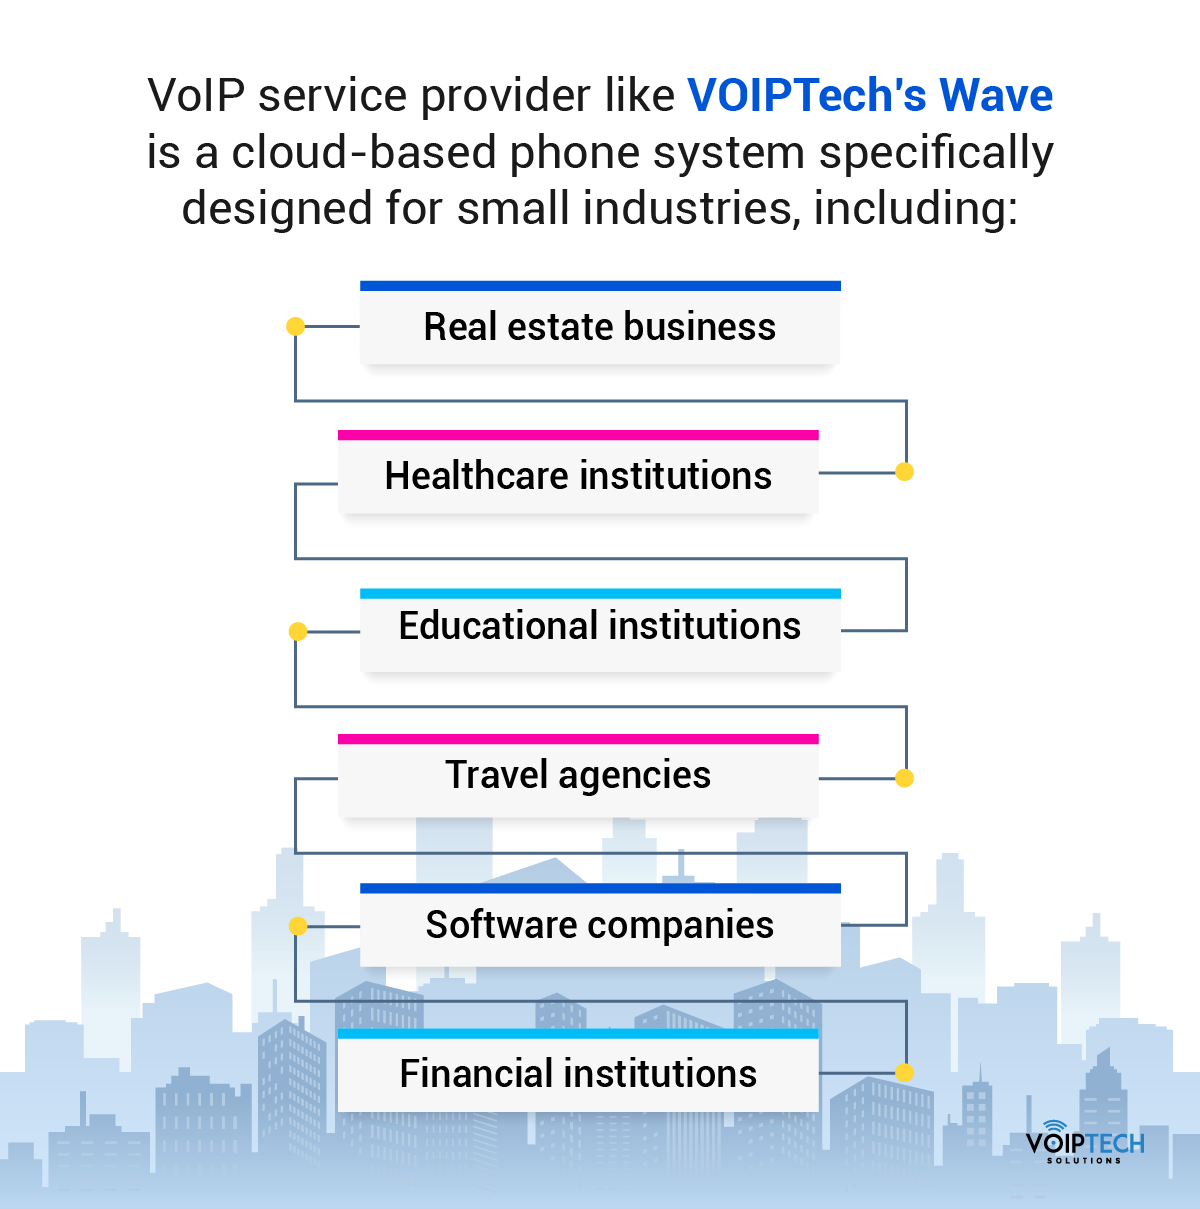 Reasons to Voip img 2